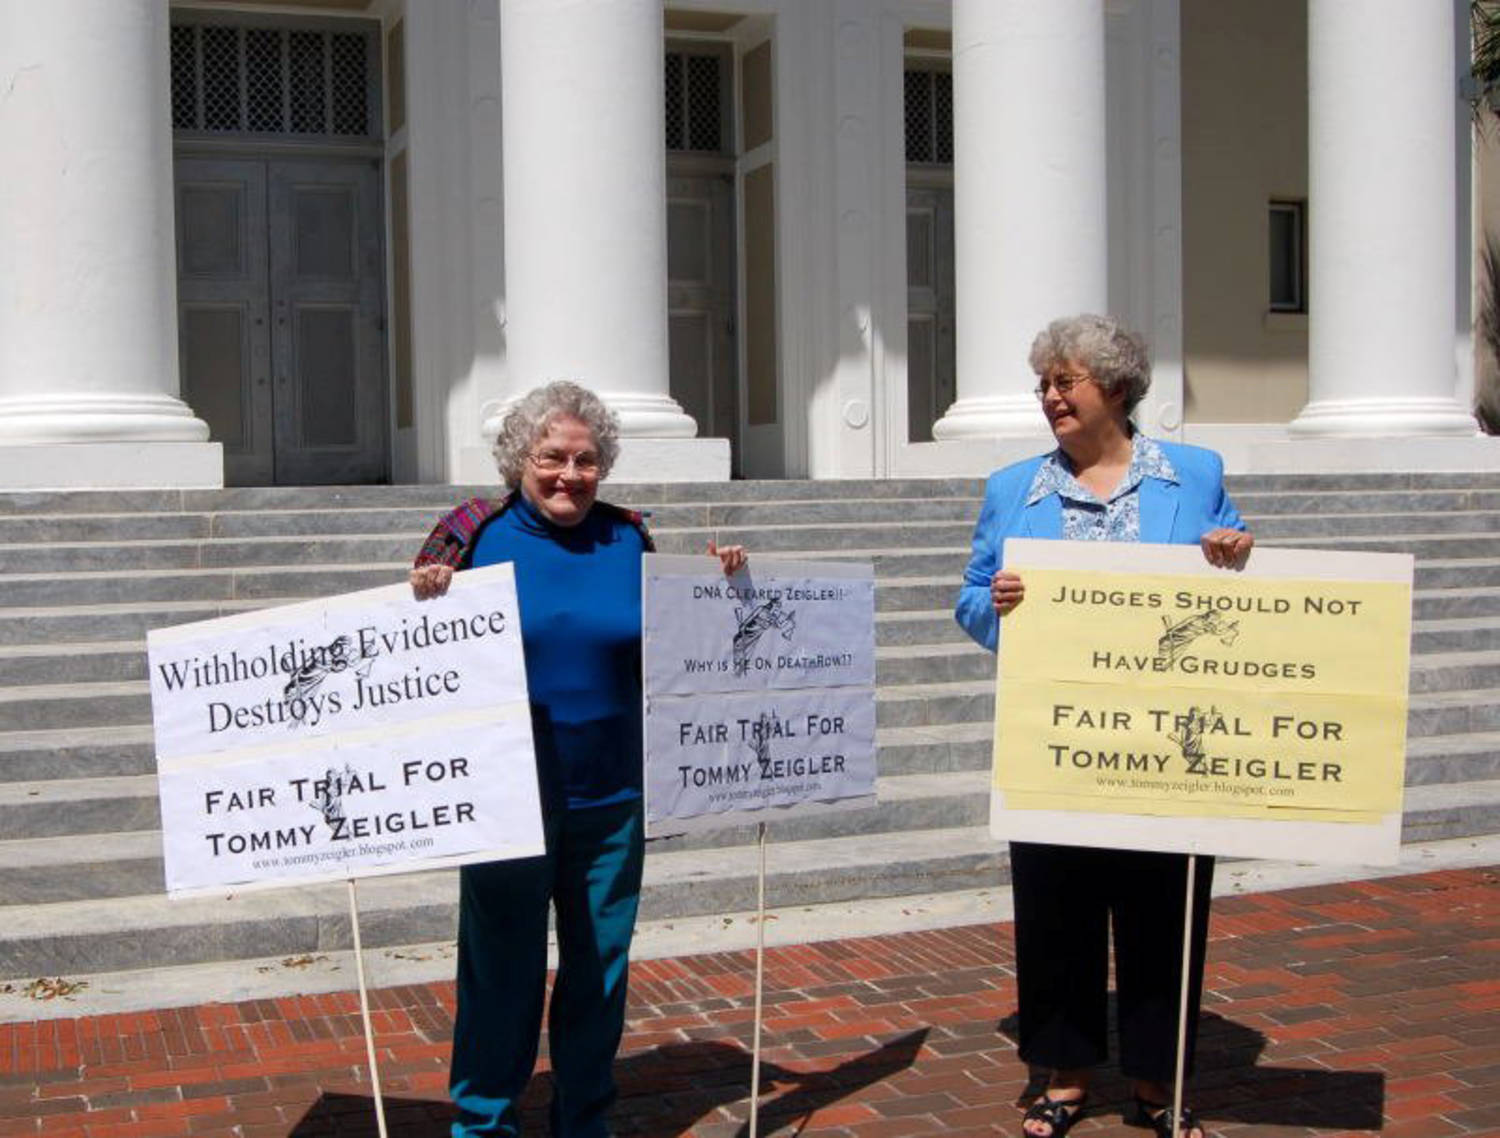 Two older women standing in front of courthouse steps and columns, holding picket signs supporting Tommy Zeigler.